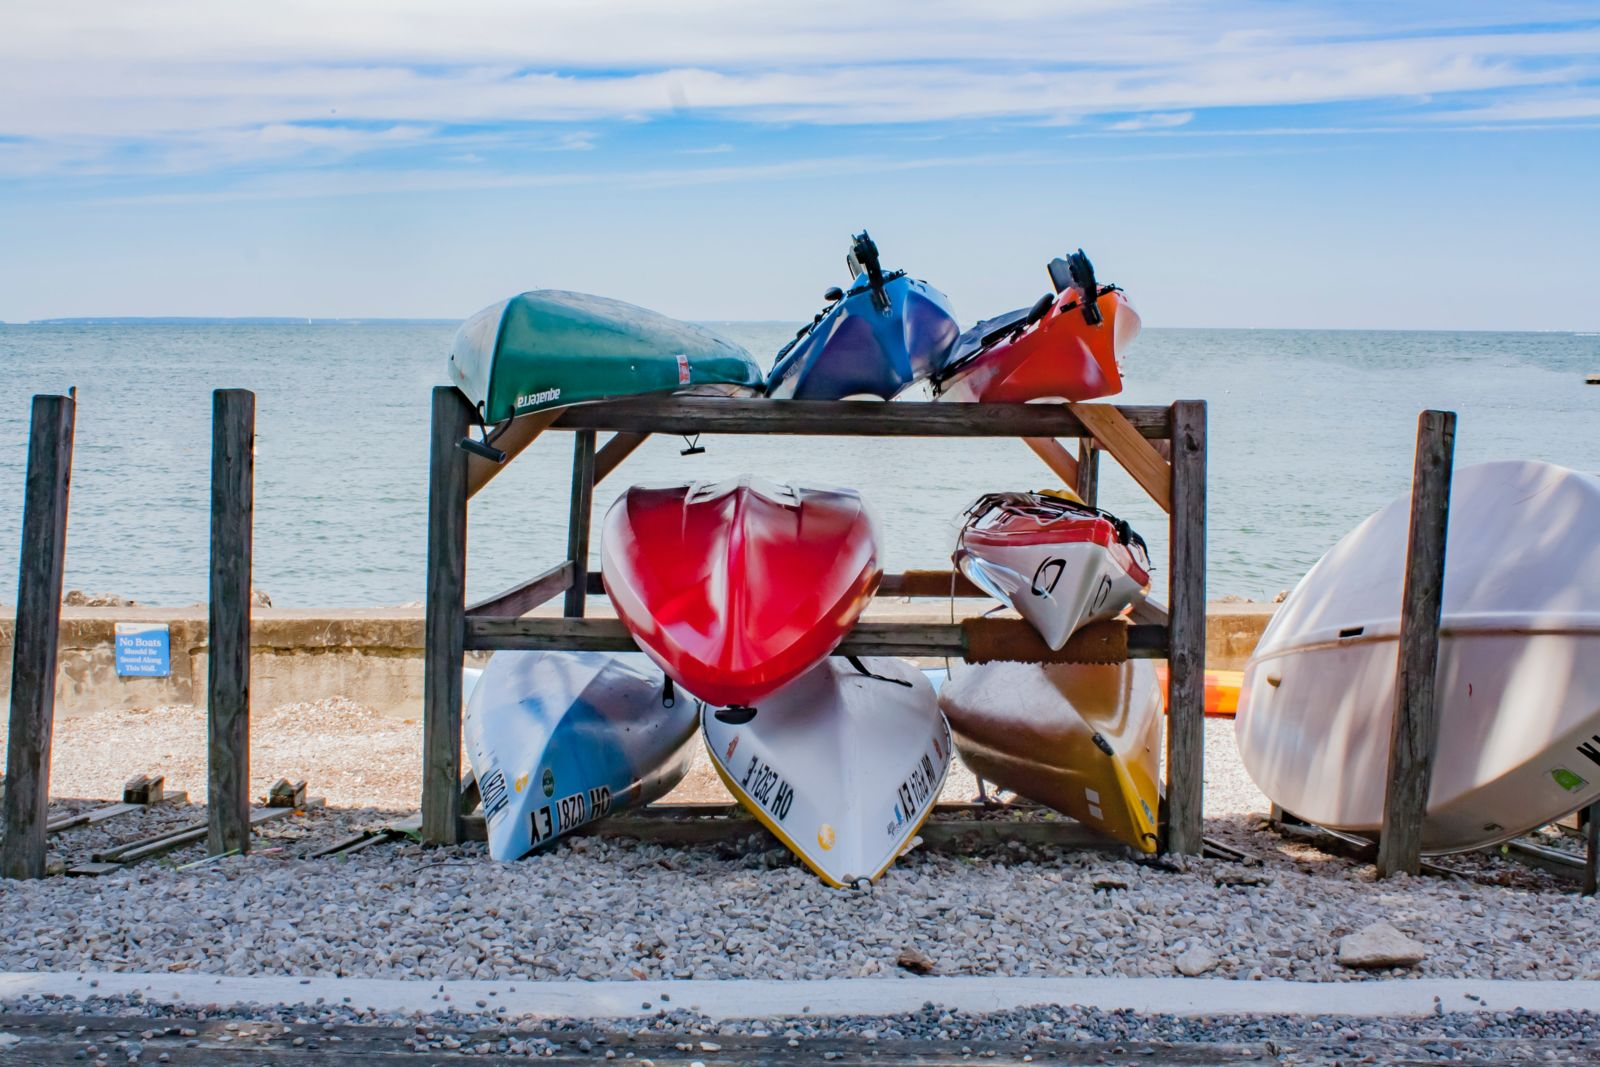 Large rack of kayaks, canoes, and beach equipment rentals by the ocean.